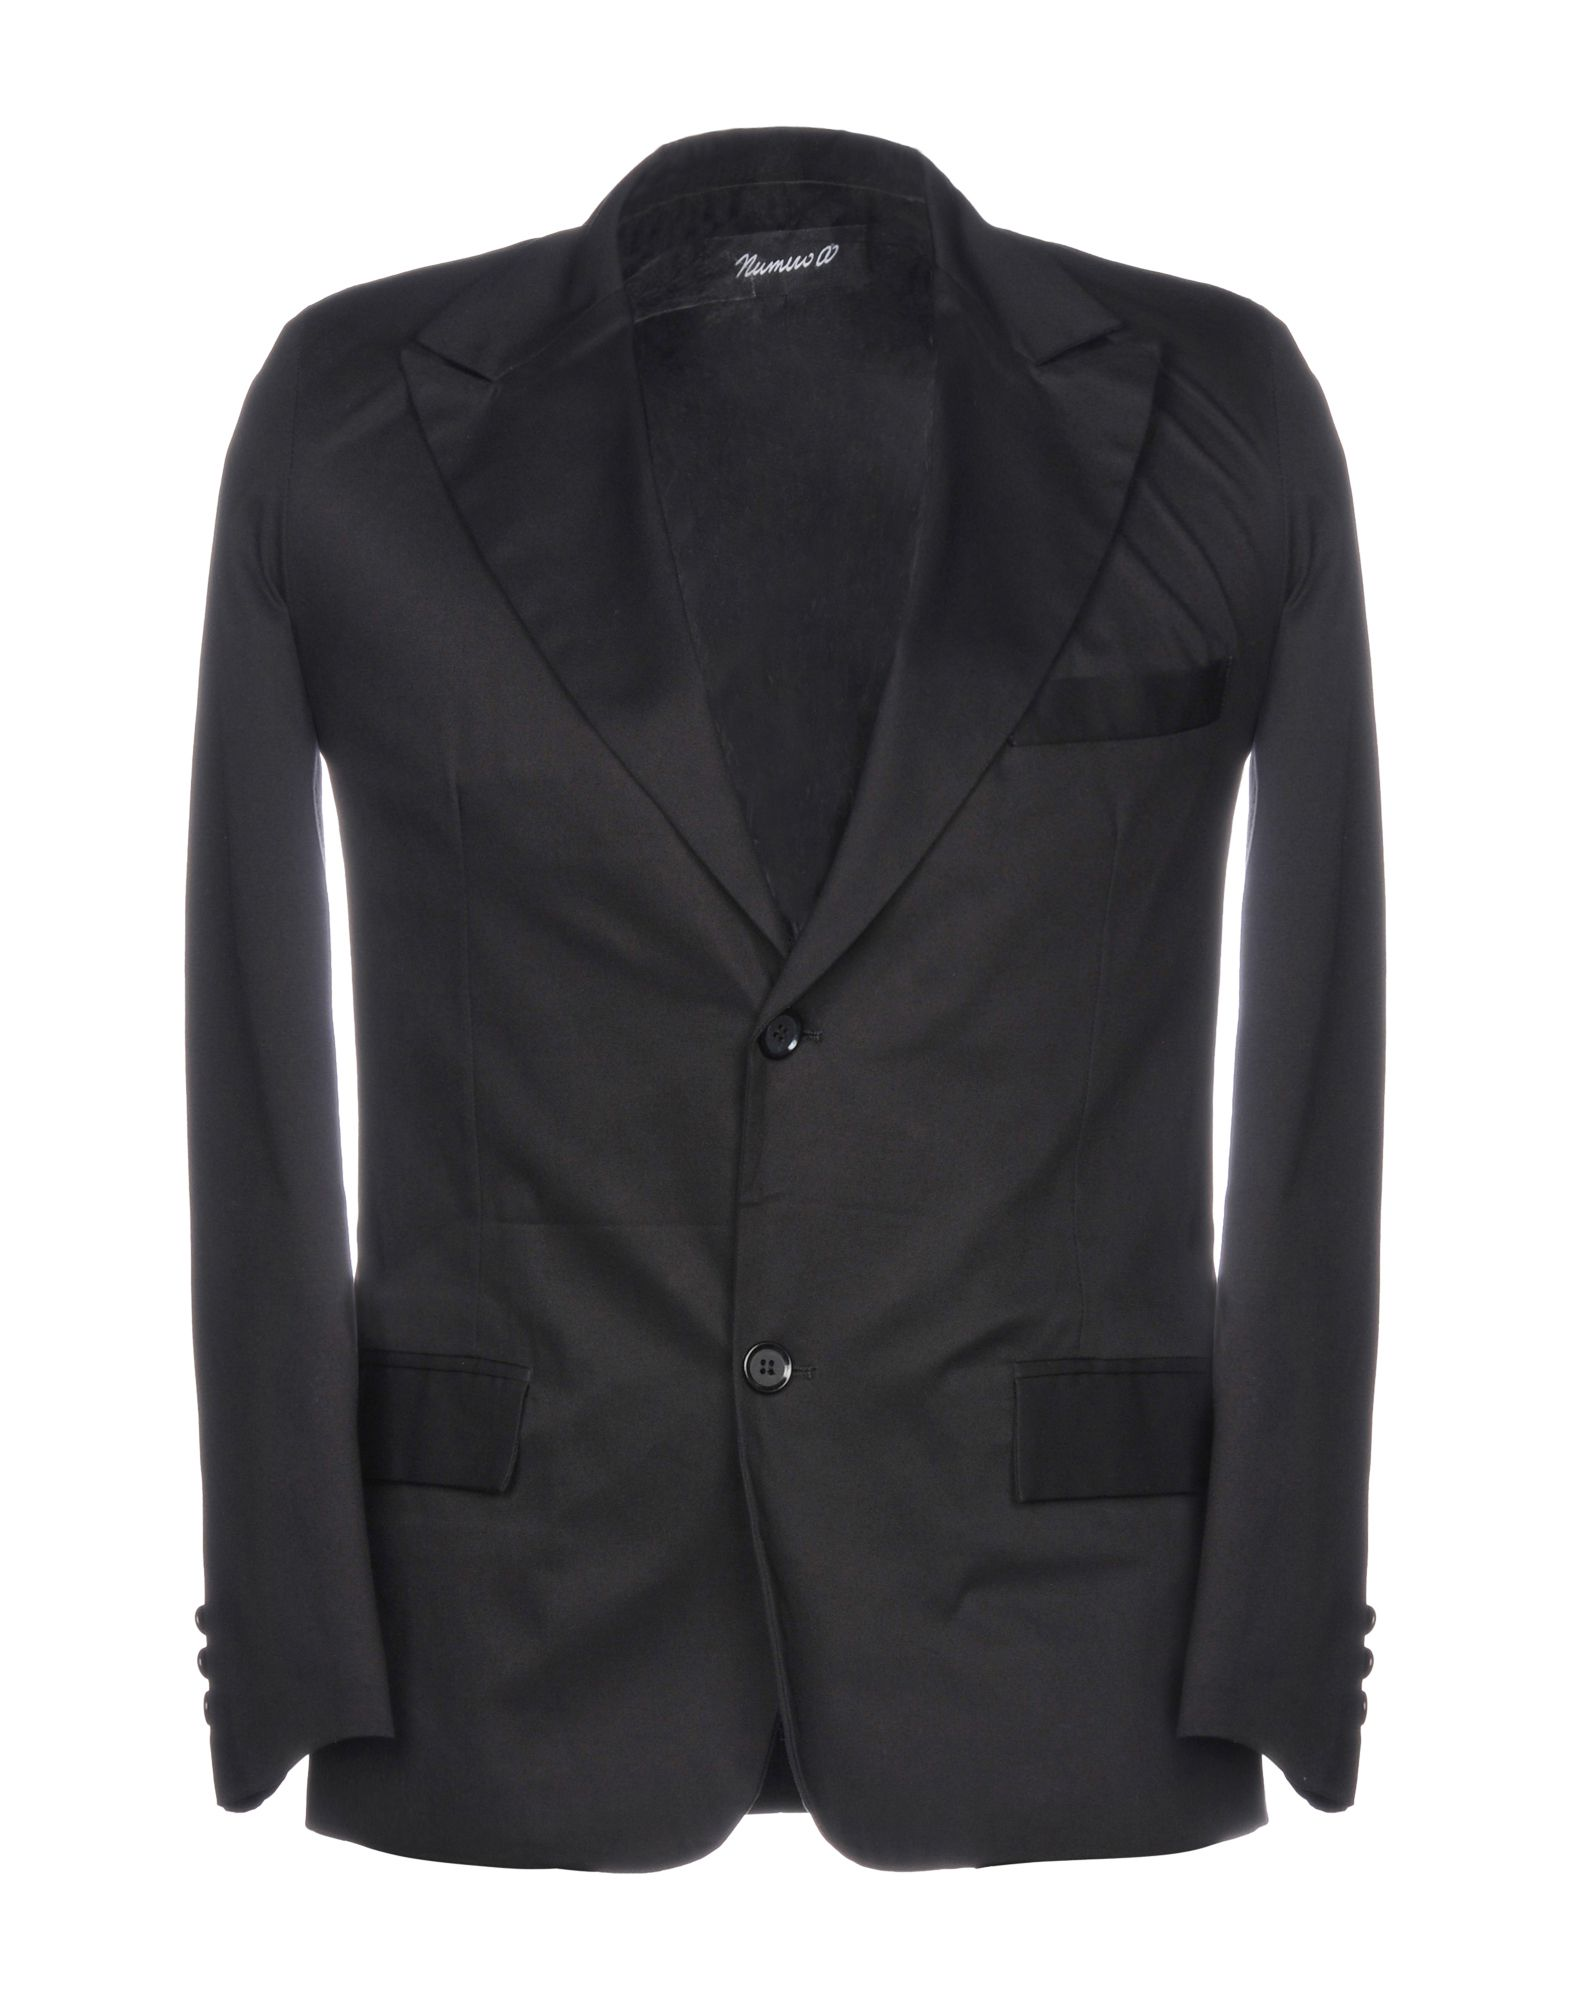 NUMERO00 Blazer in Black